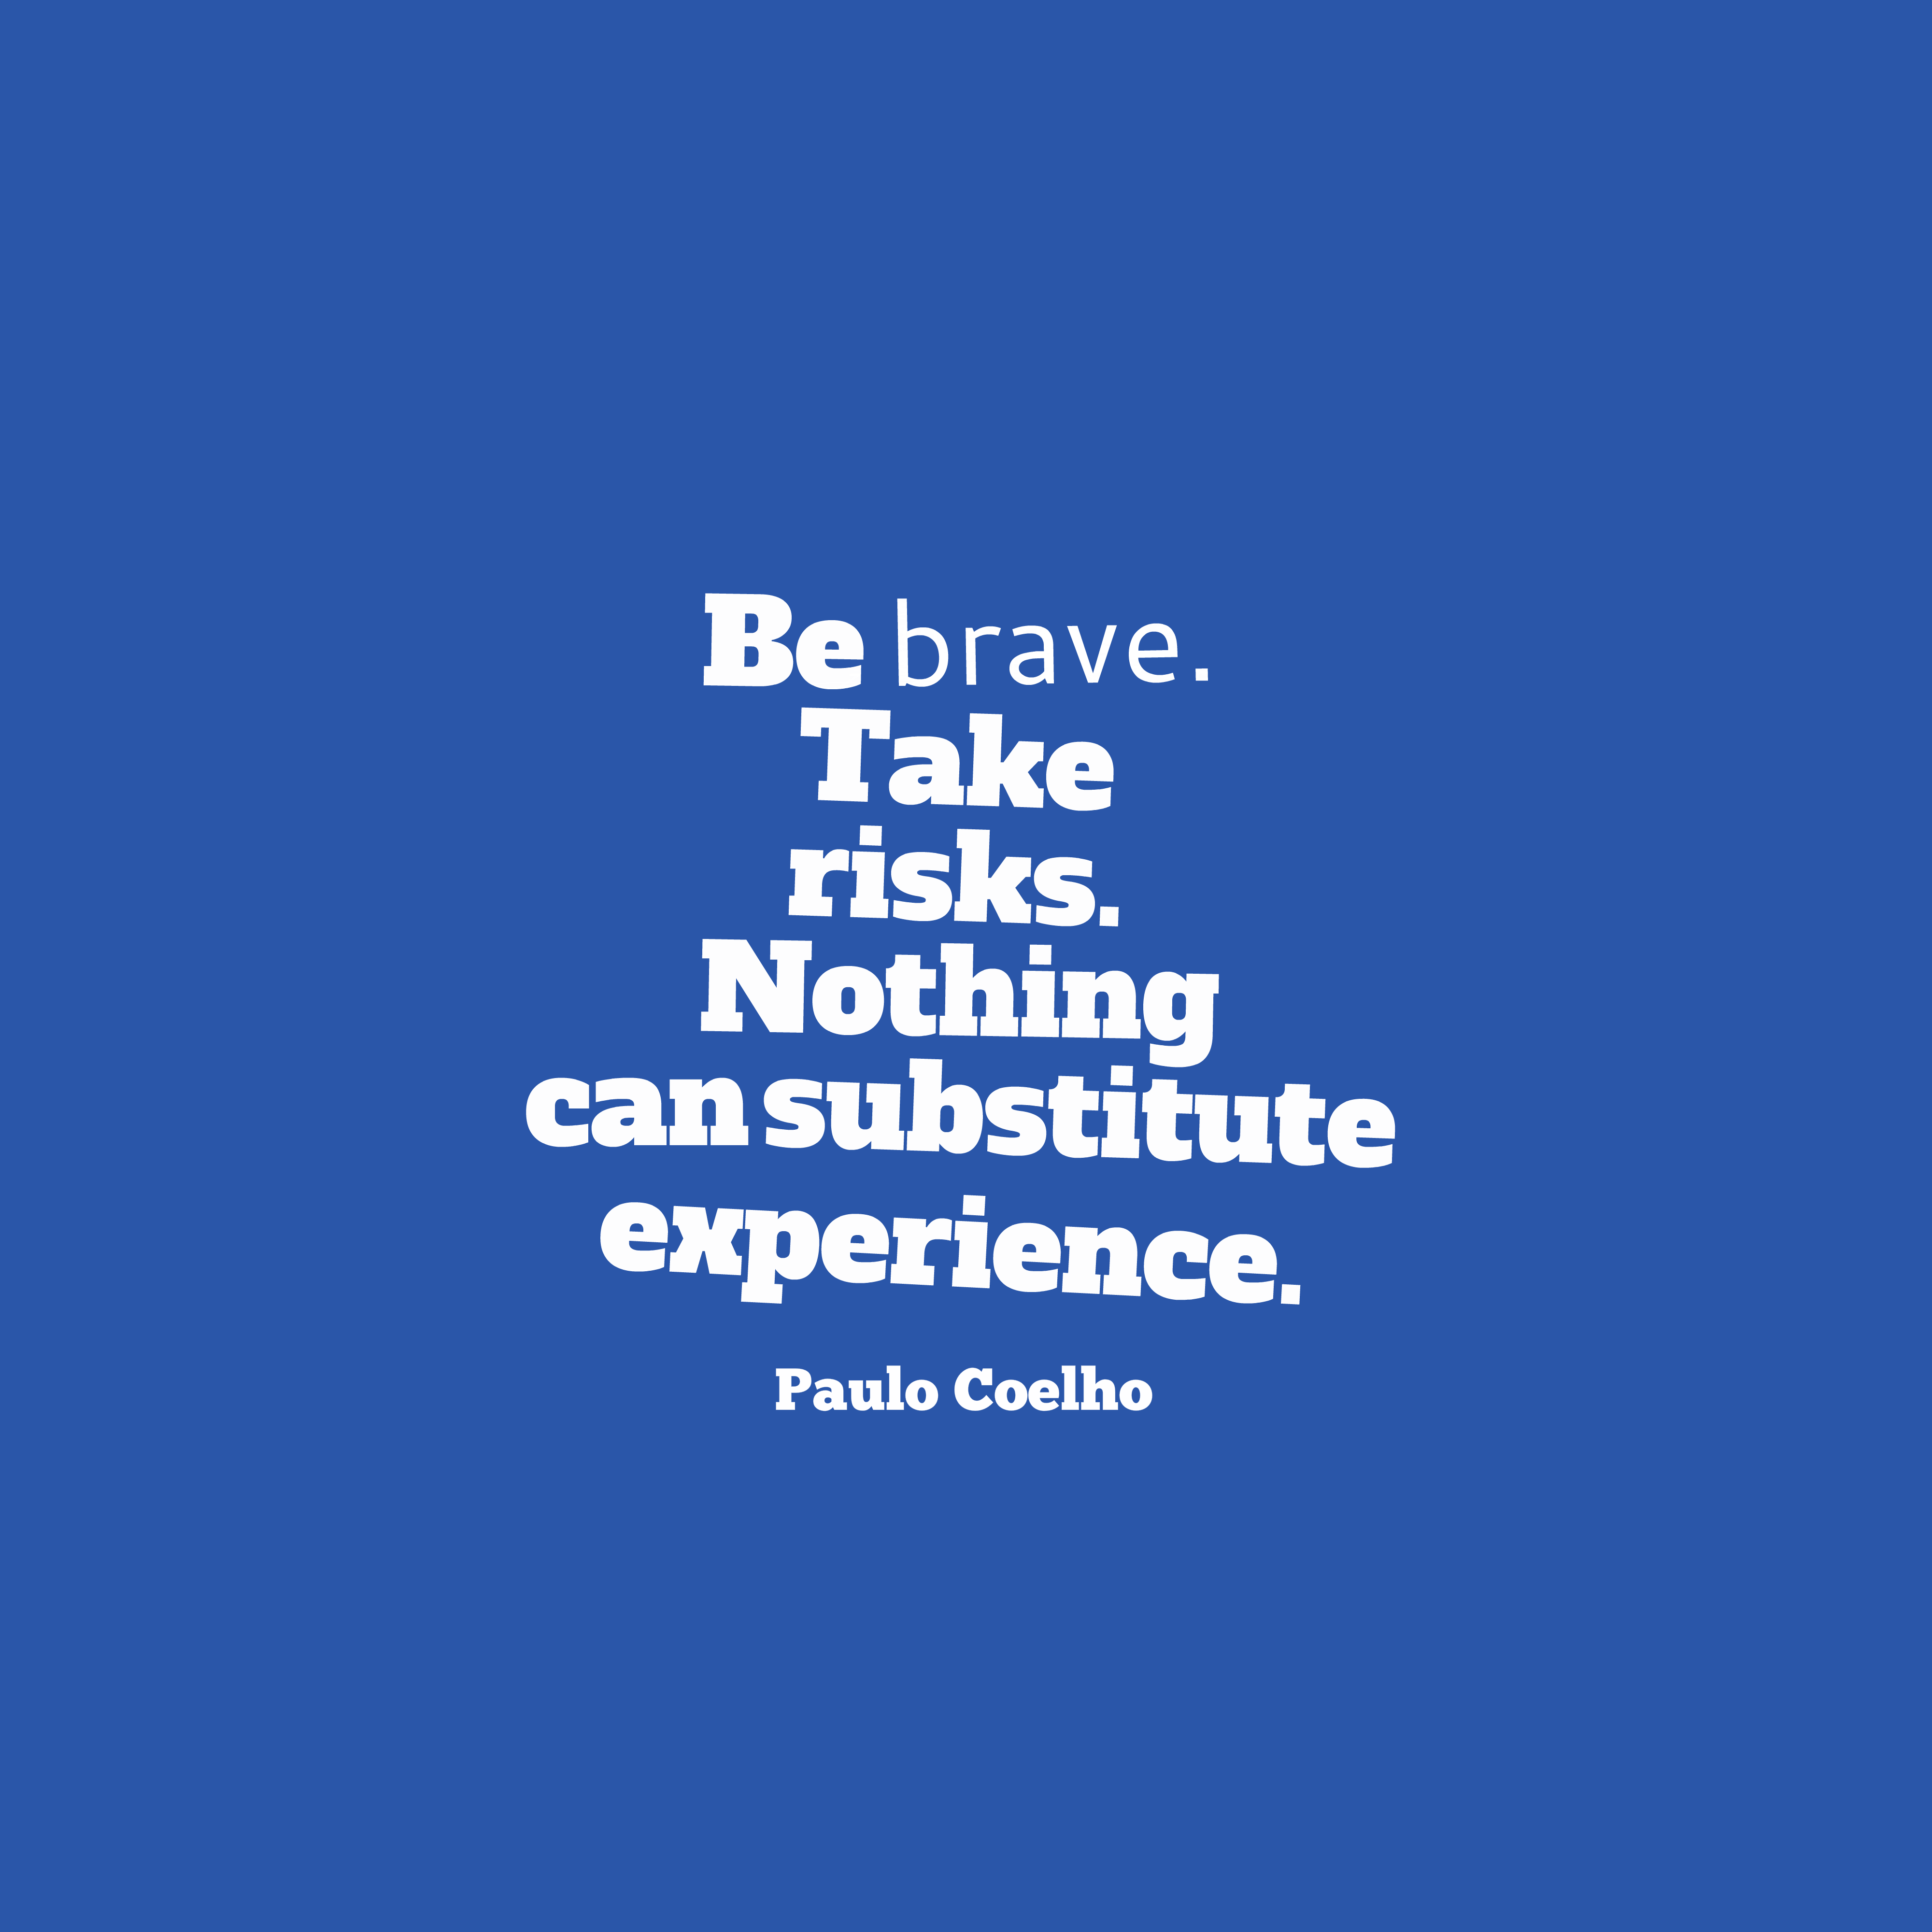 Quotes image of Be brave. Take risks. Nothing can substitute experience.